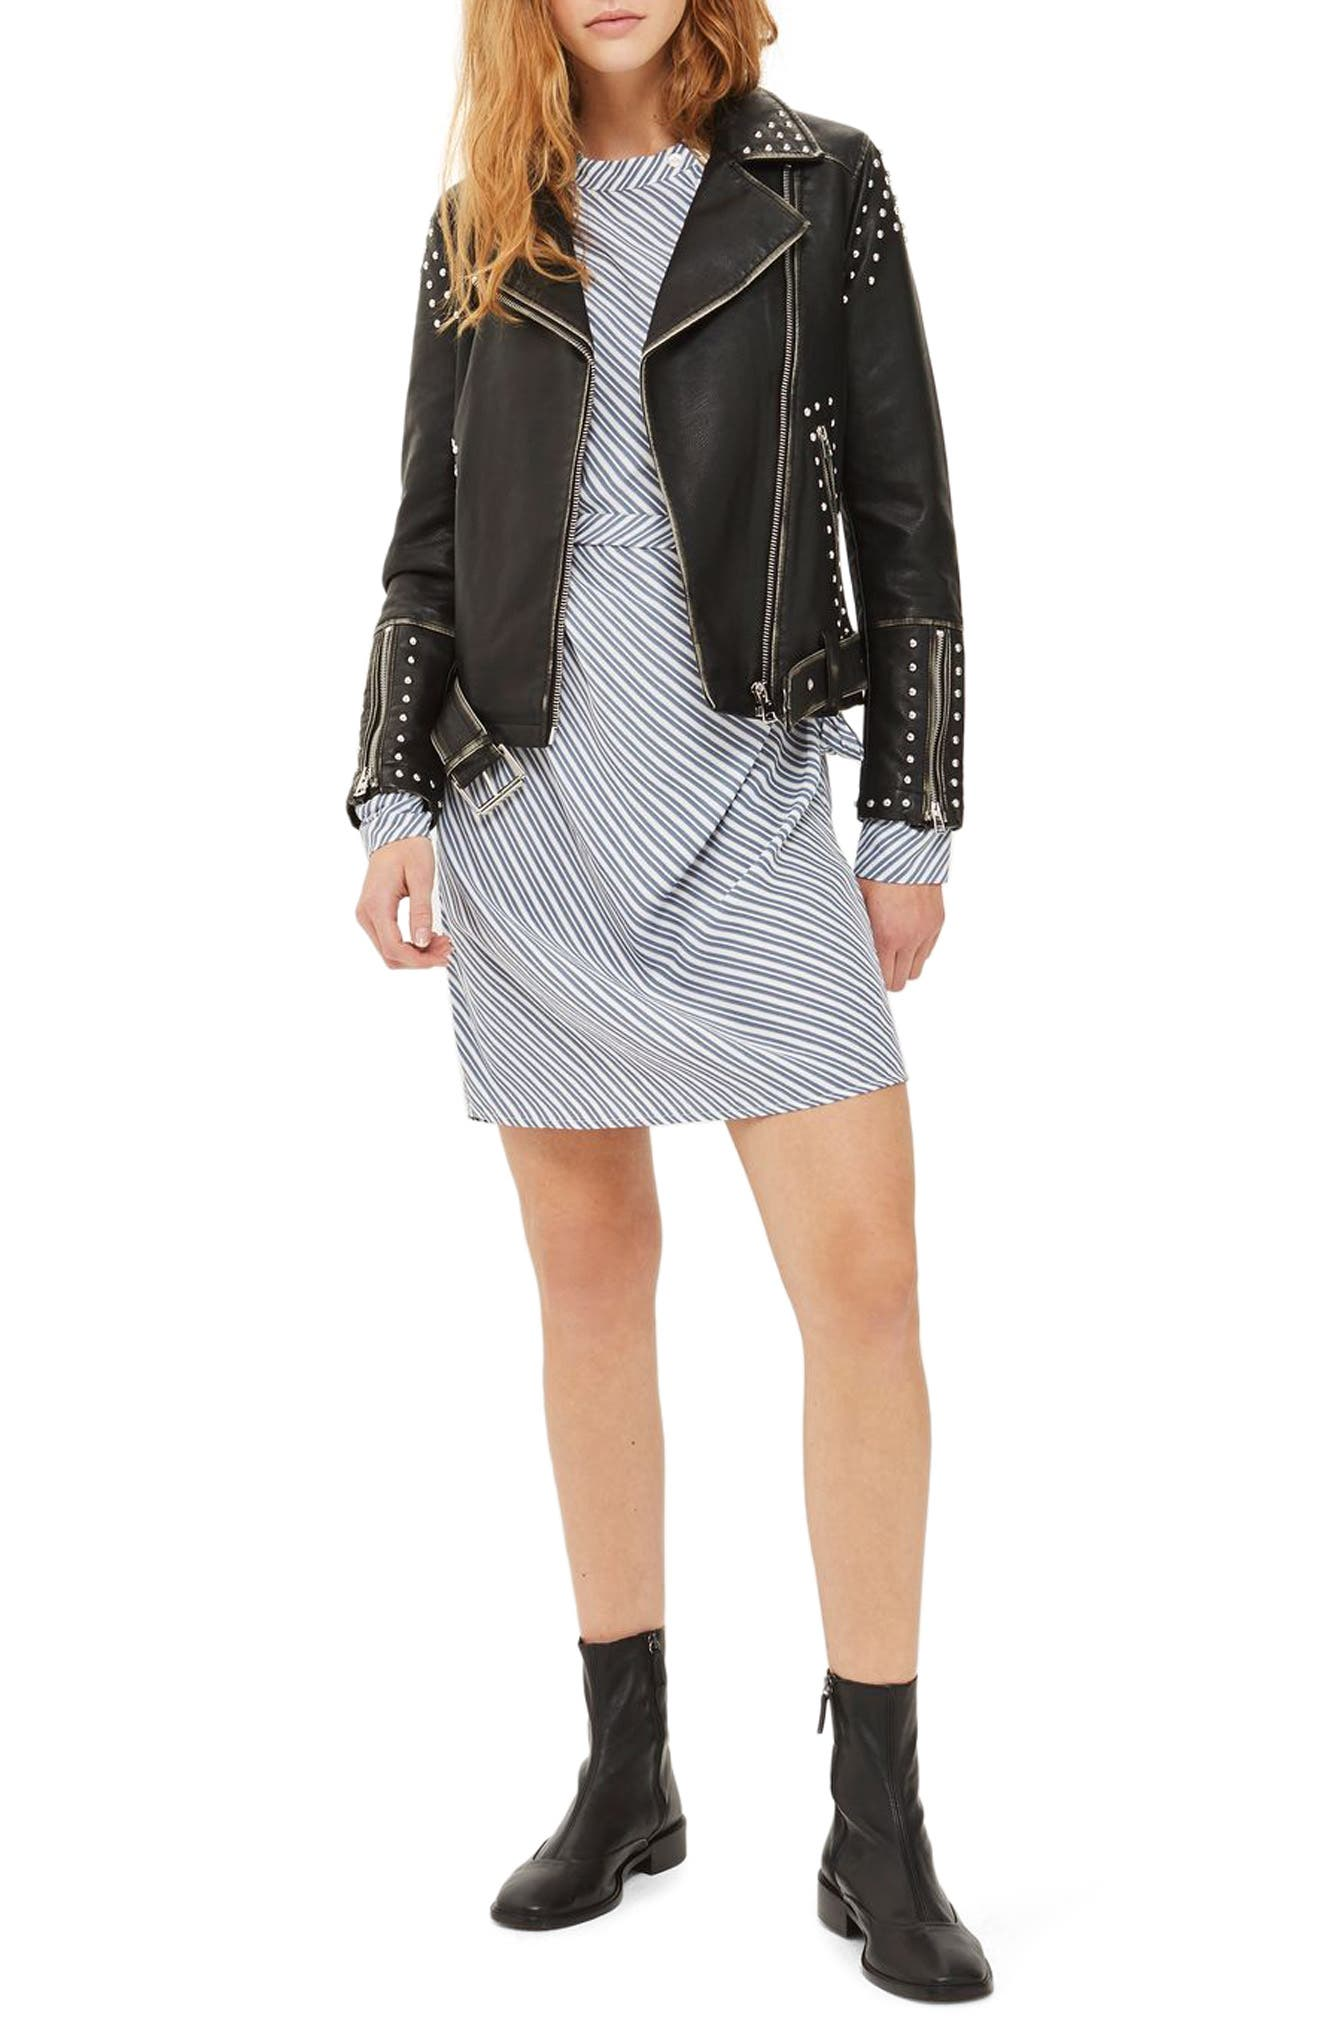 Main Image - Topshop Naomi Studded Faux Leather Biker Jacket